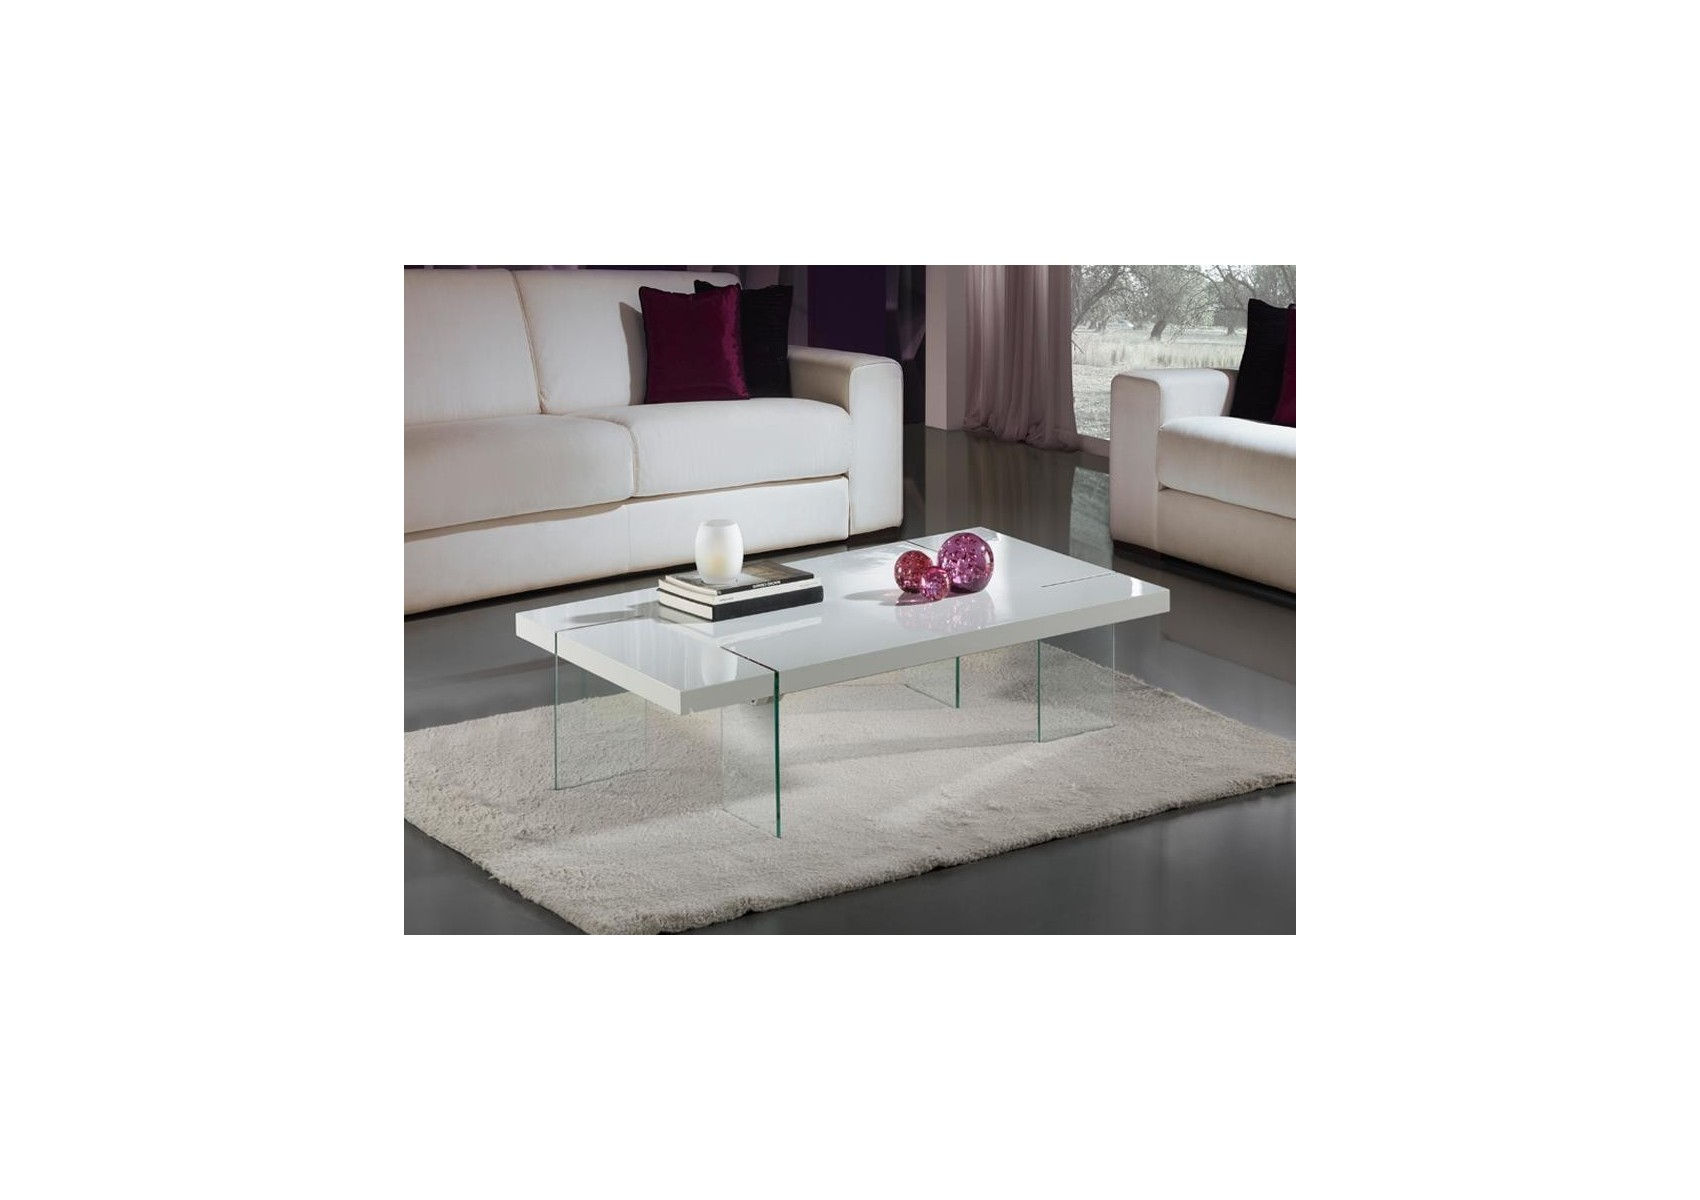 Table basse design blanc table basse eslov blanc laqu for Table verre blanc extensible